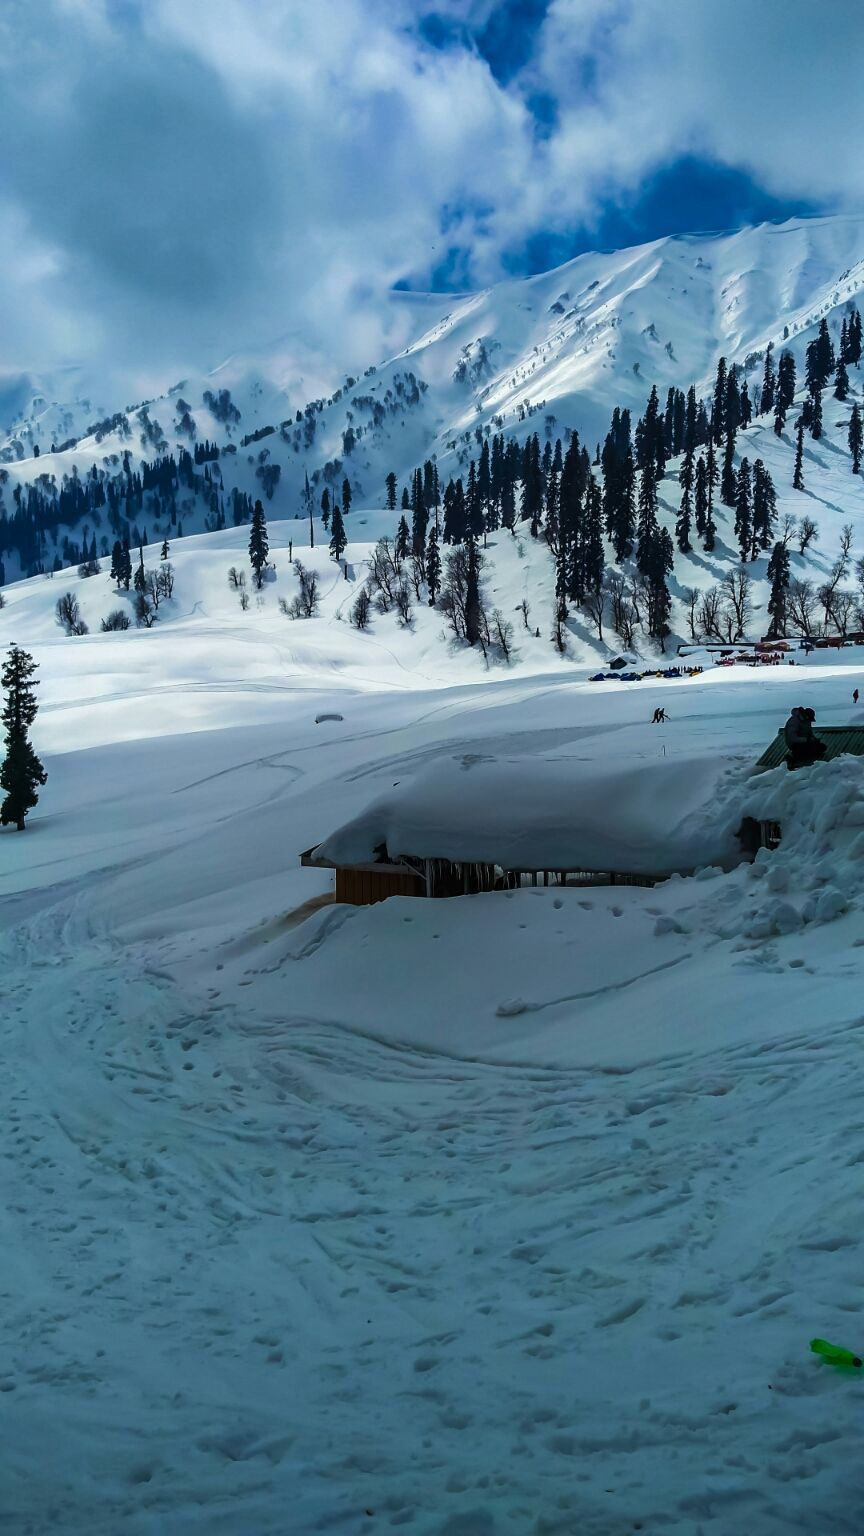 Photo of Khilanmarg By deepesh dhonde